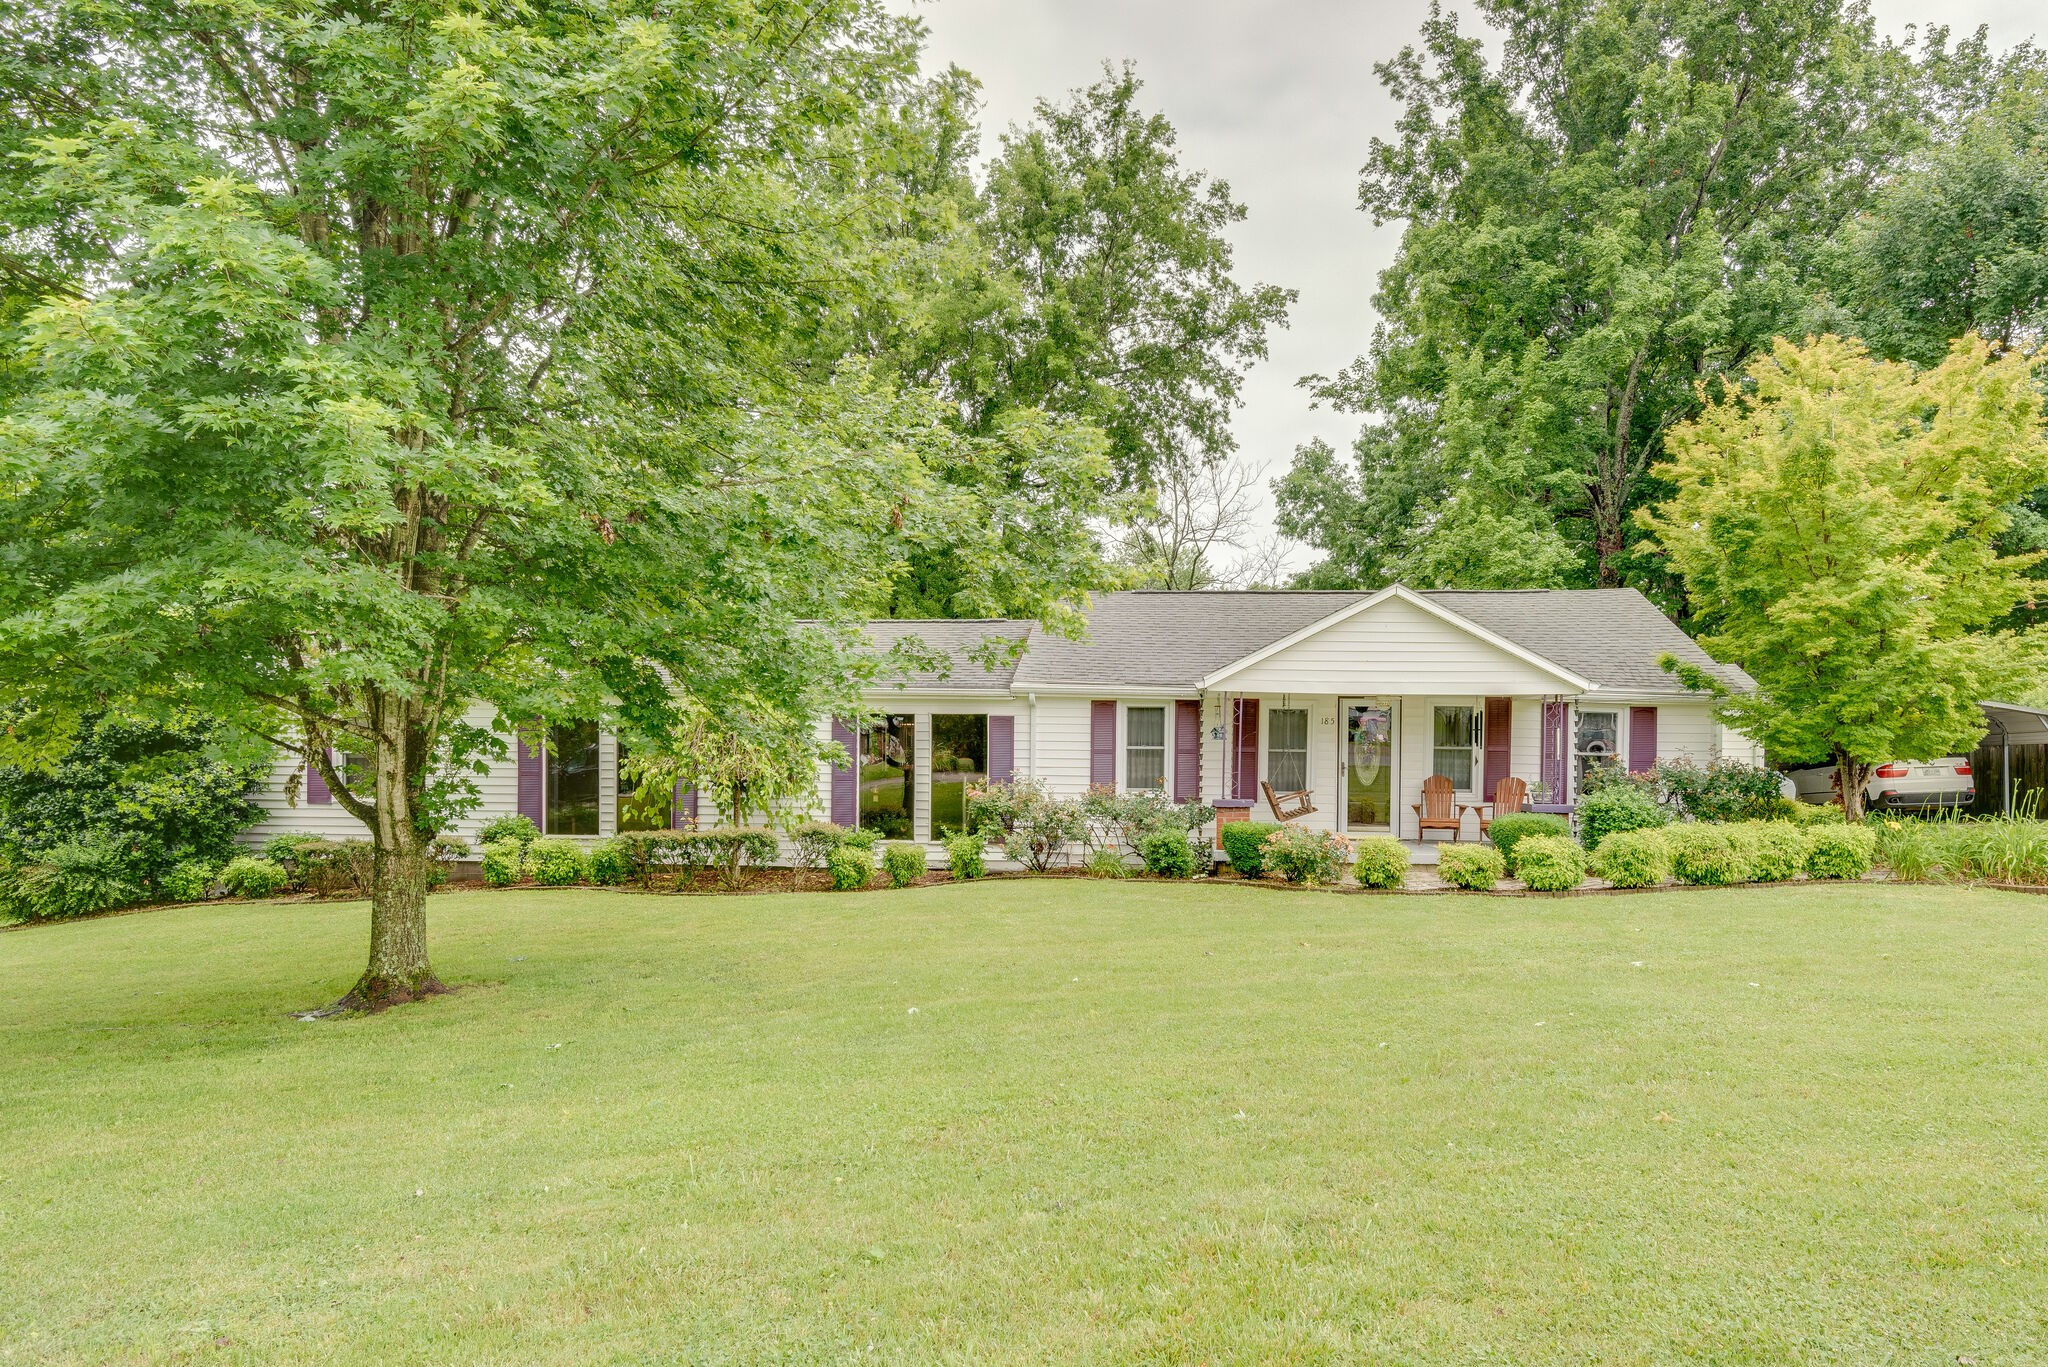 185 Easy St Property Photo - MC EWEN, TN real estate listing